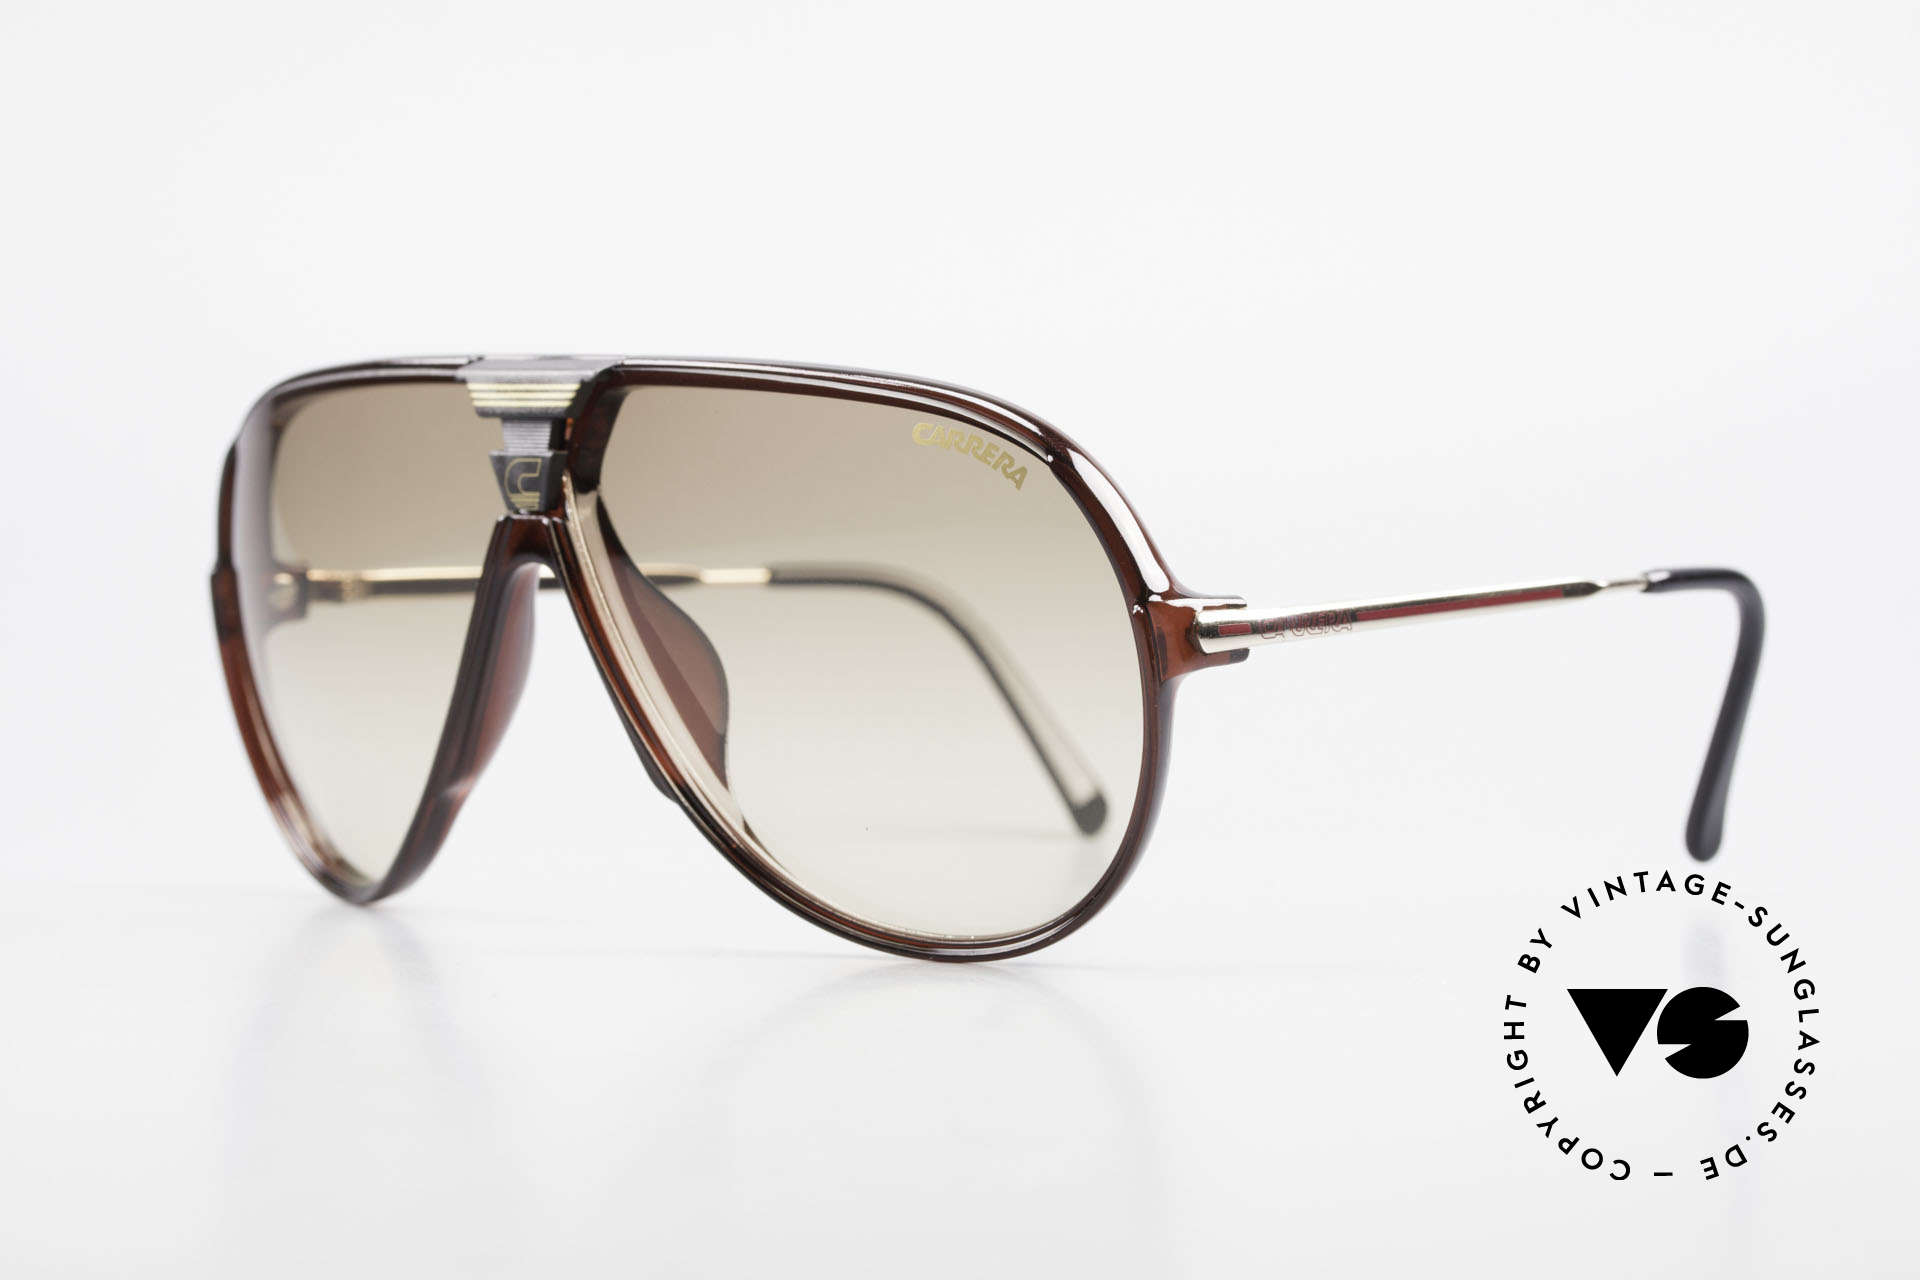 Carrera 5593 80's Aviator Sports Sunglasses, state-of-the-art lenses (2 sets) & with orig. case, Made for Men